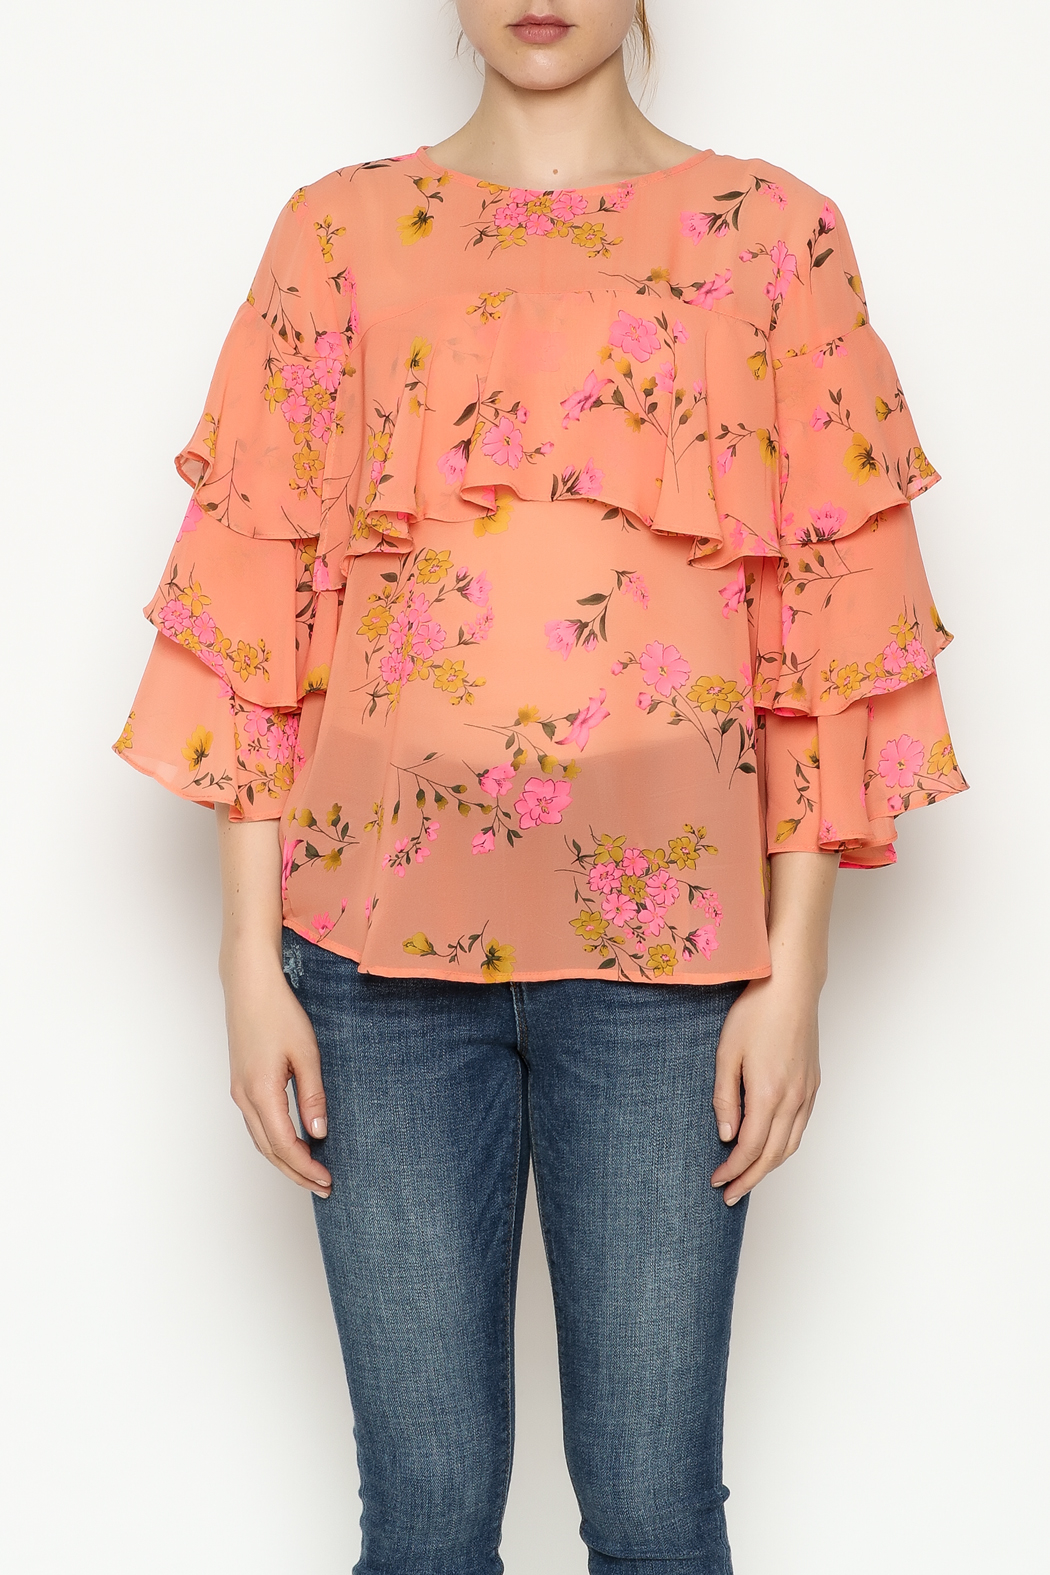 Cousin Earl Peach Floral Top - Front Full Image